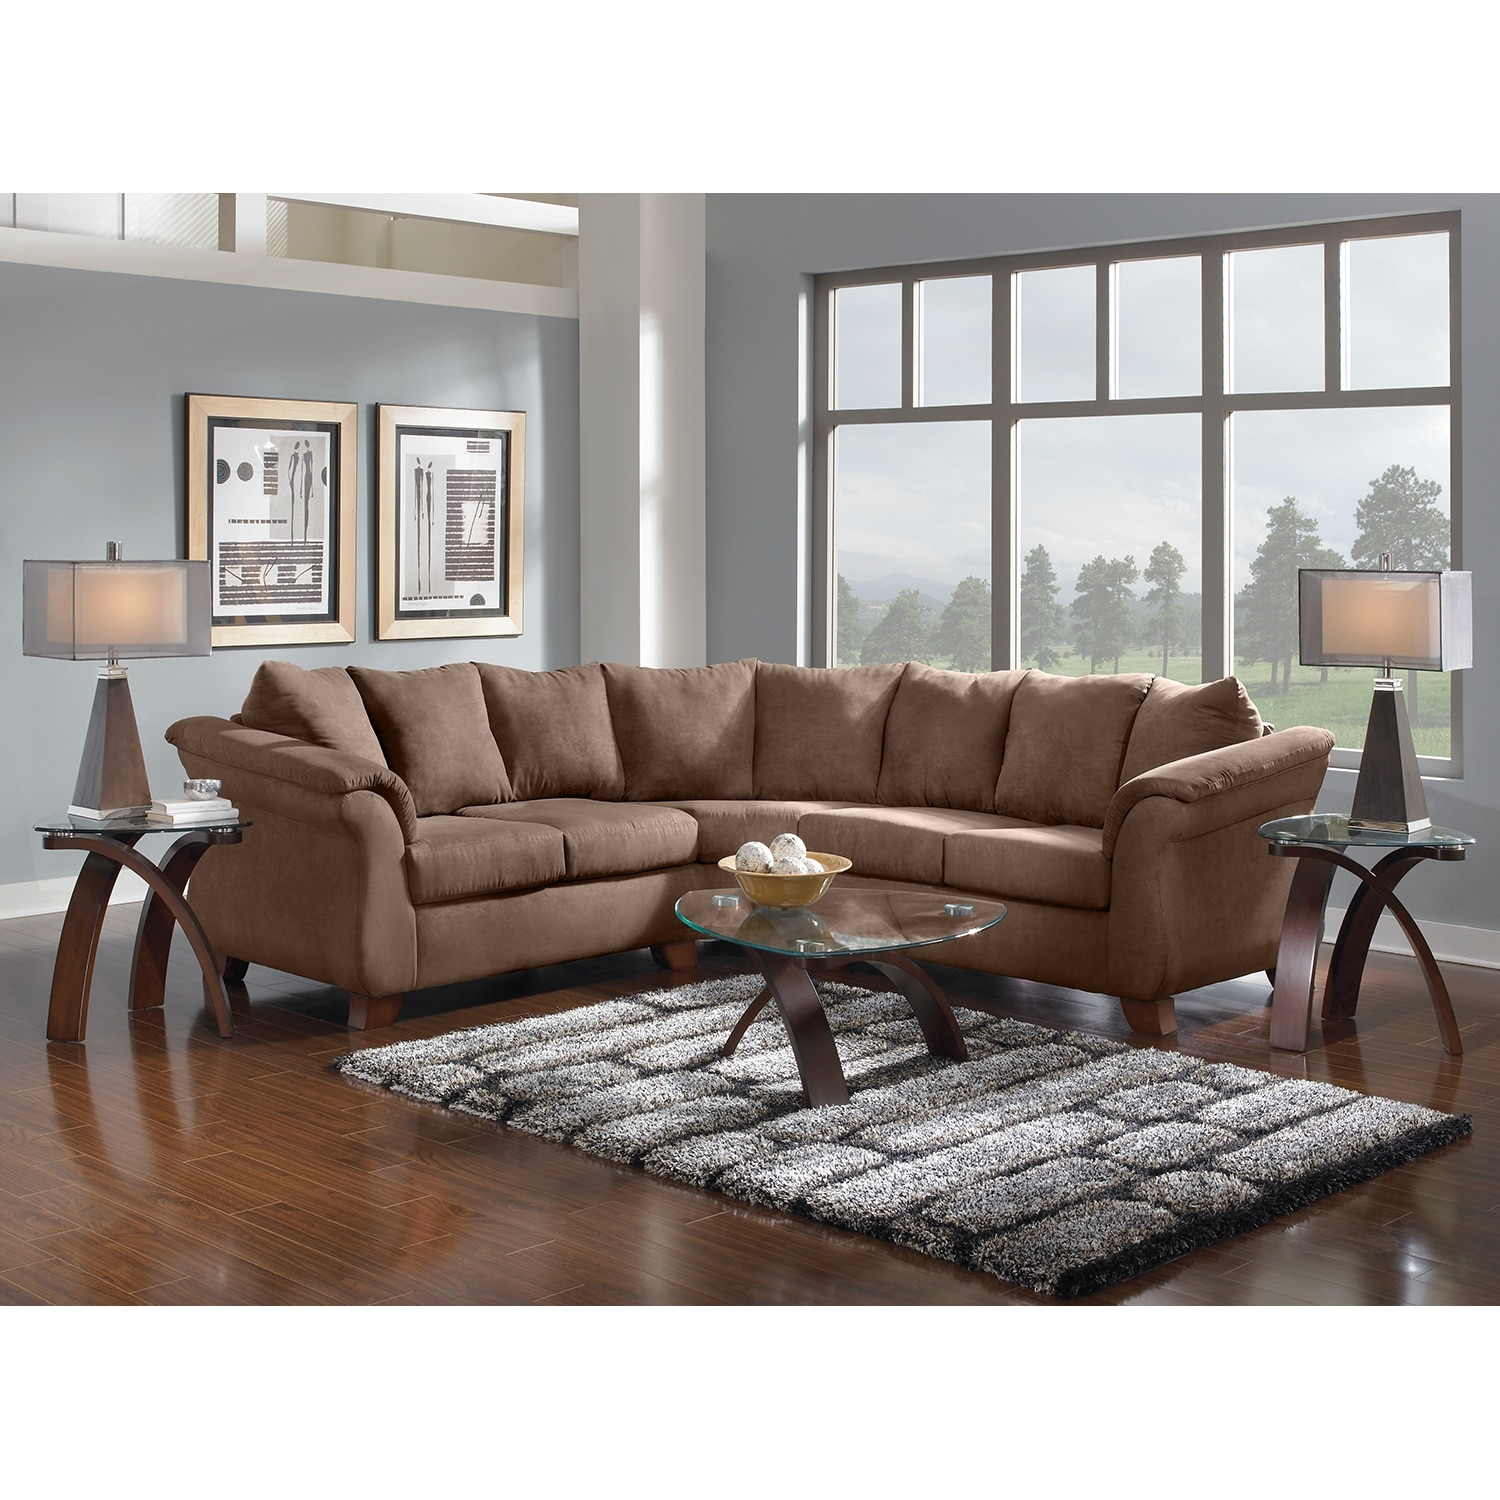 American Furniture Providence Sectional: Adrian 2-Piece Sectional - Taupe